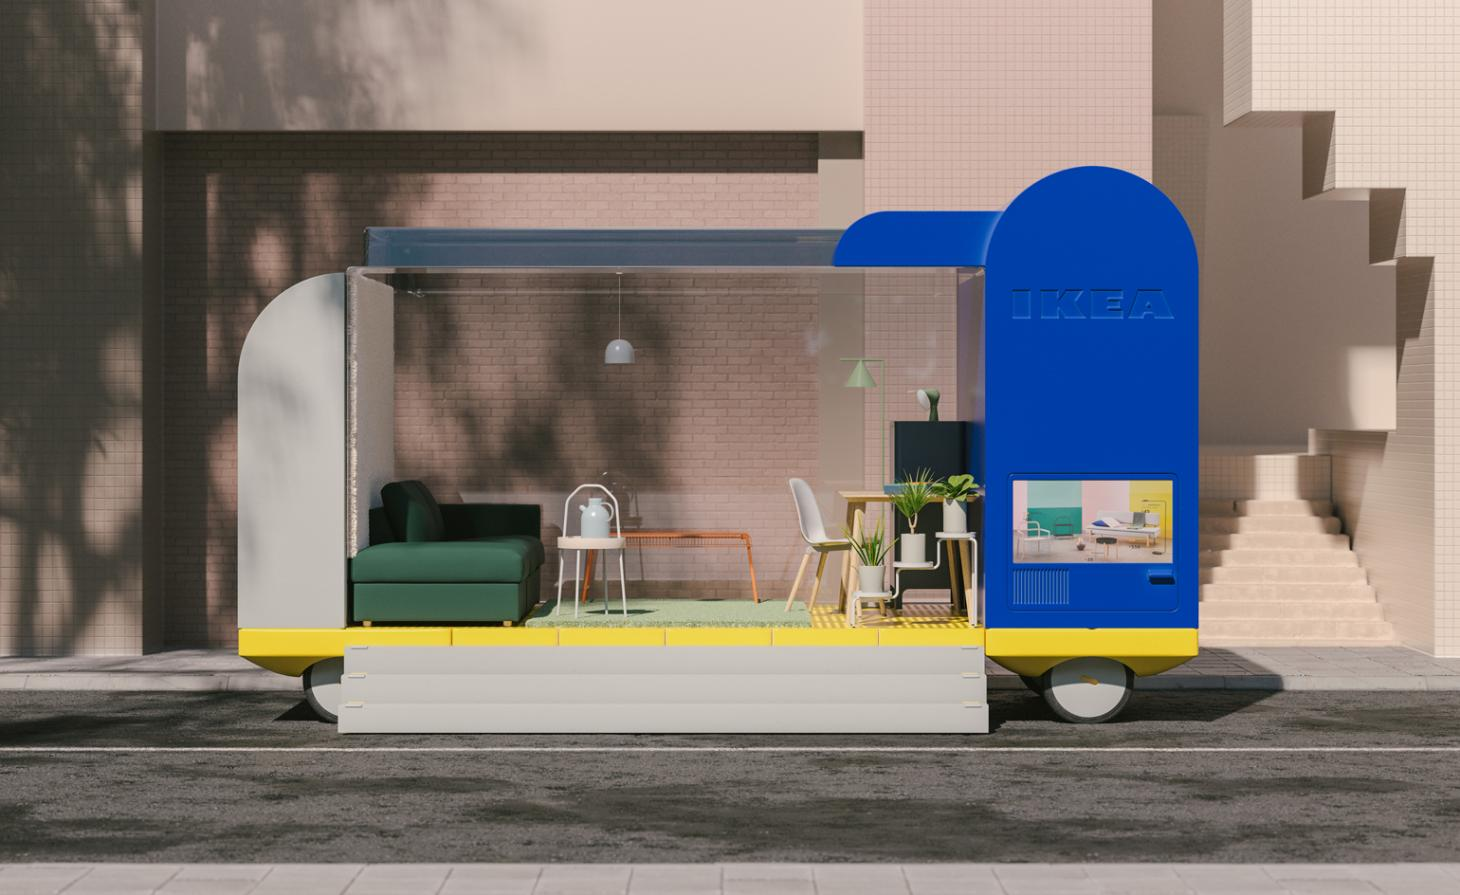 Shop, by Space10, Spaces on Wheels project